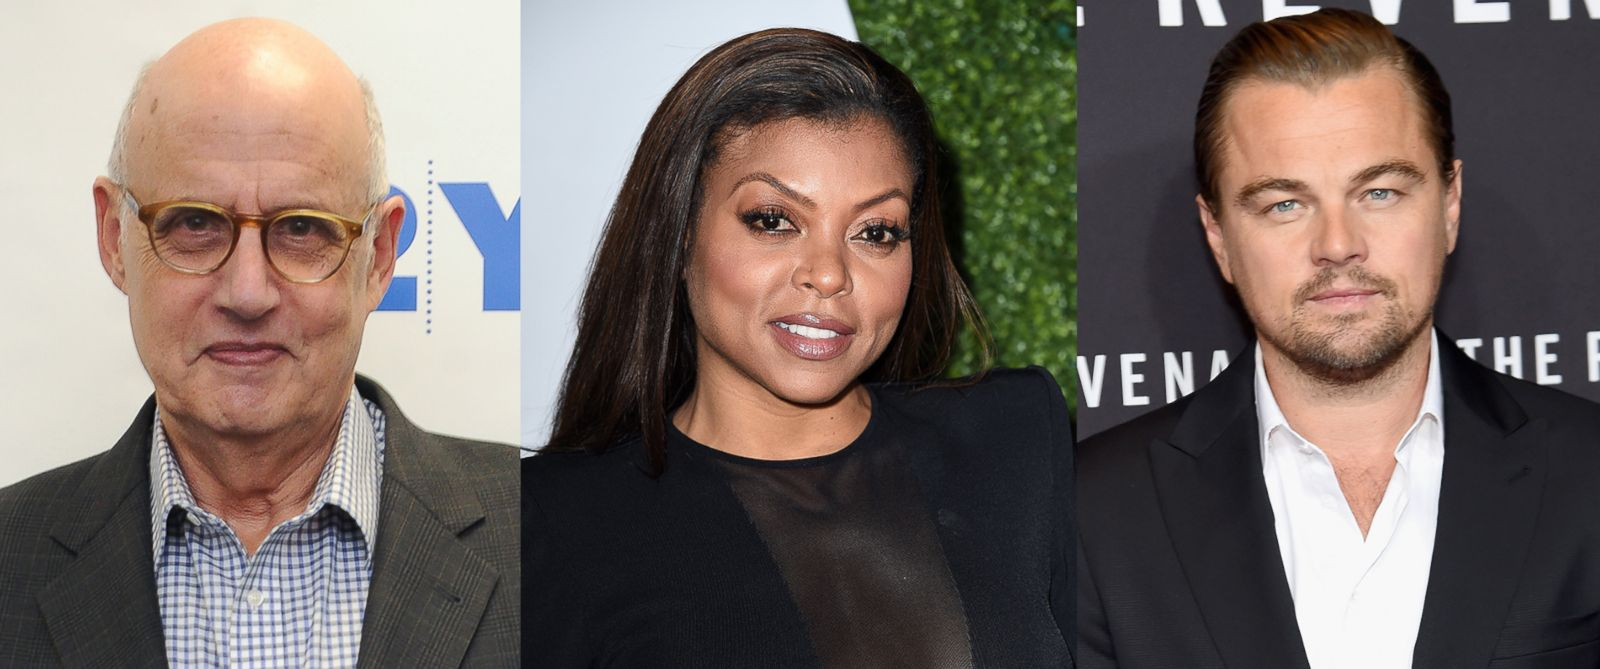 PHOTO: Jeffrey Tambor attends 92Y Talks on Dec. 14, 2015 in New York. Taraji P. Henson attends the GQ 20th Anniversary Men Of The Year Party on Dec. 3, 2015 in Los Angeles. Leonardo DiCaprio attends The Revenant New York special screening, Jan. 6, 2016.